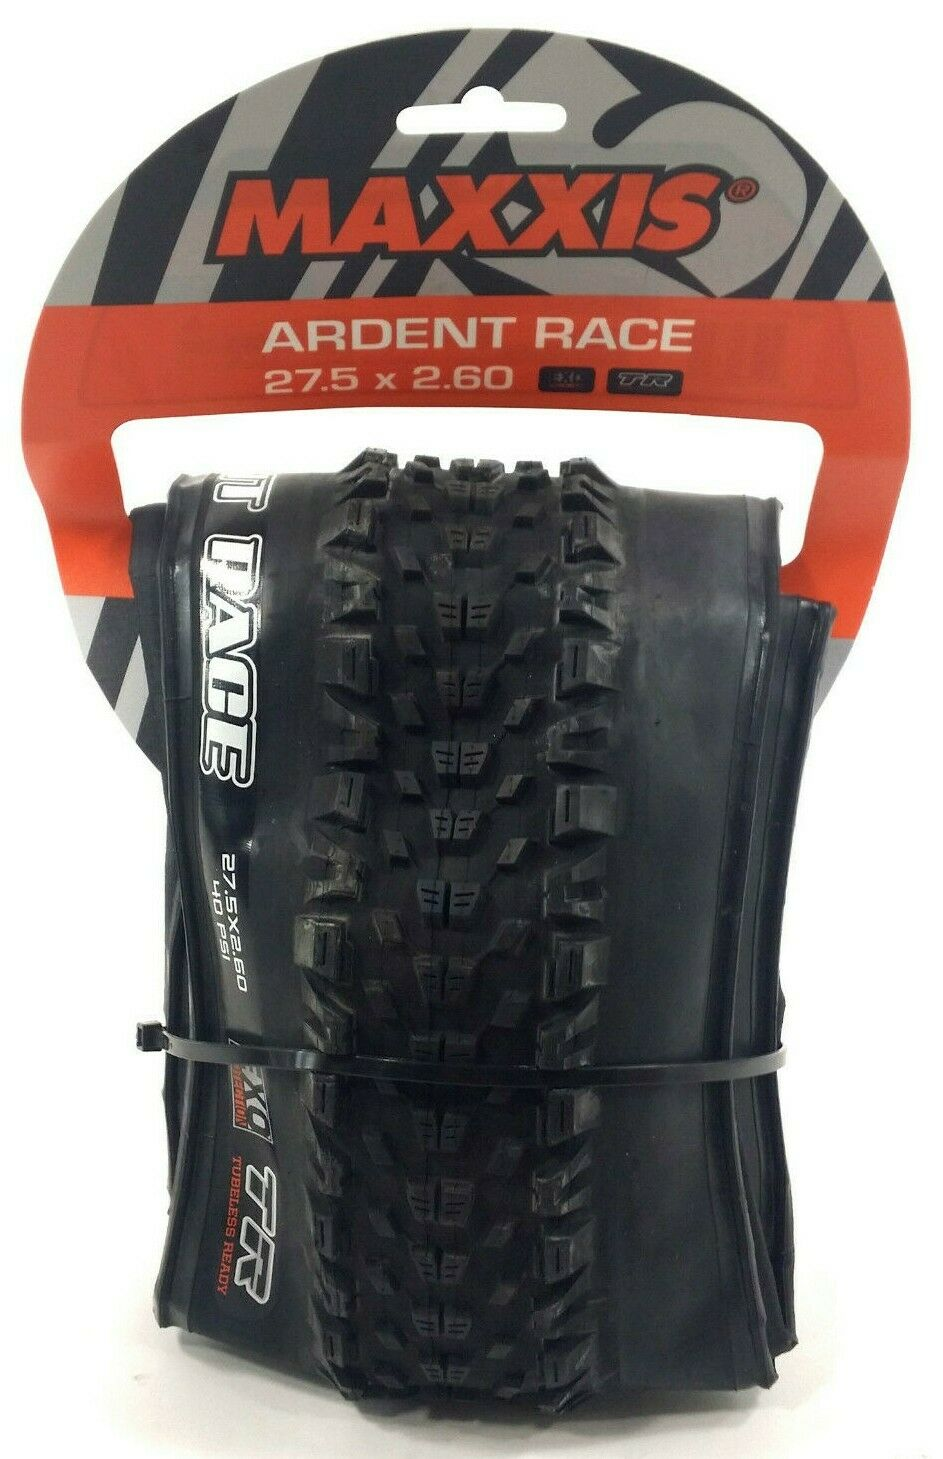 Maxxis Ardent Race Mountain  Bike Tire 27.5 x 2.6  EXO Casing Tubeless  fast delivery